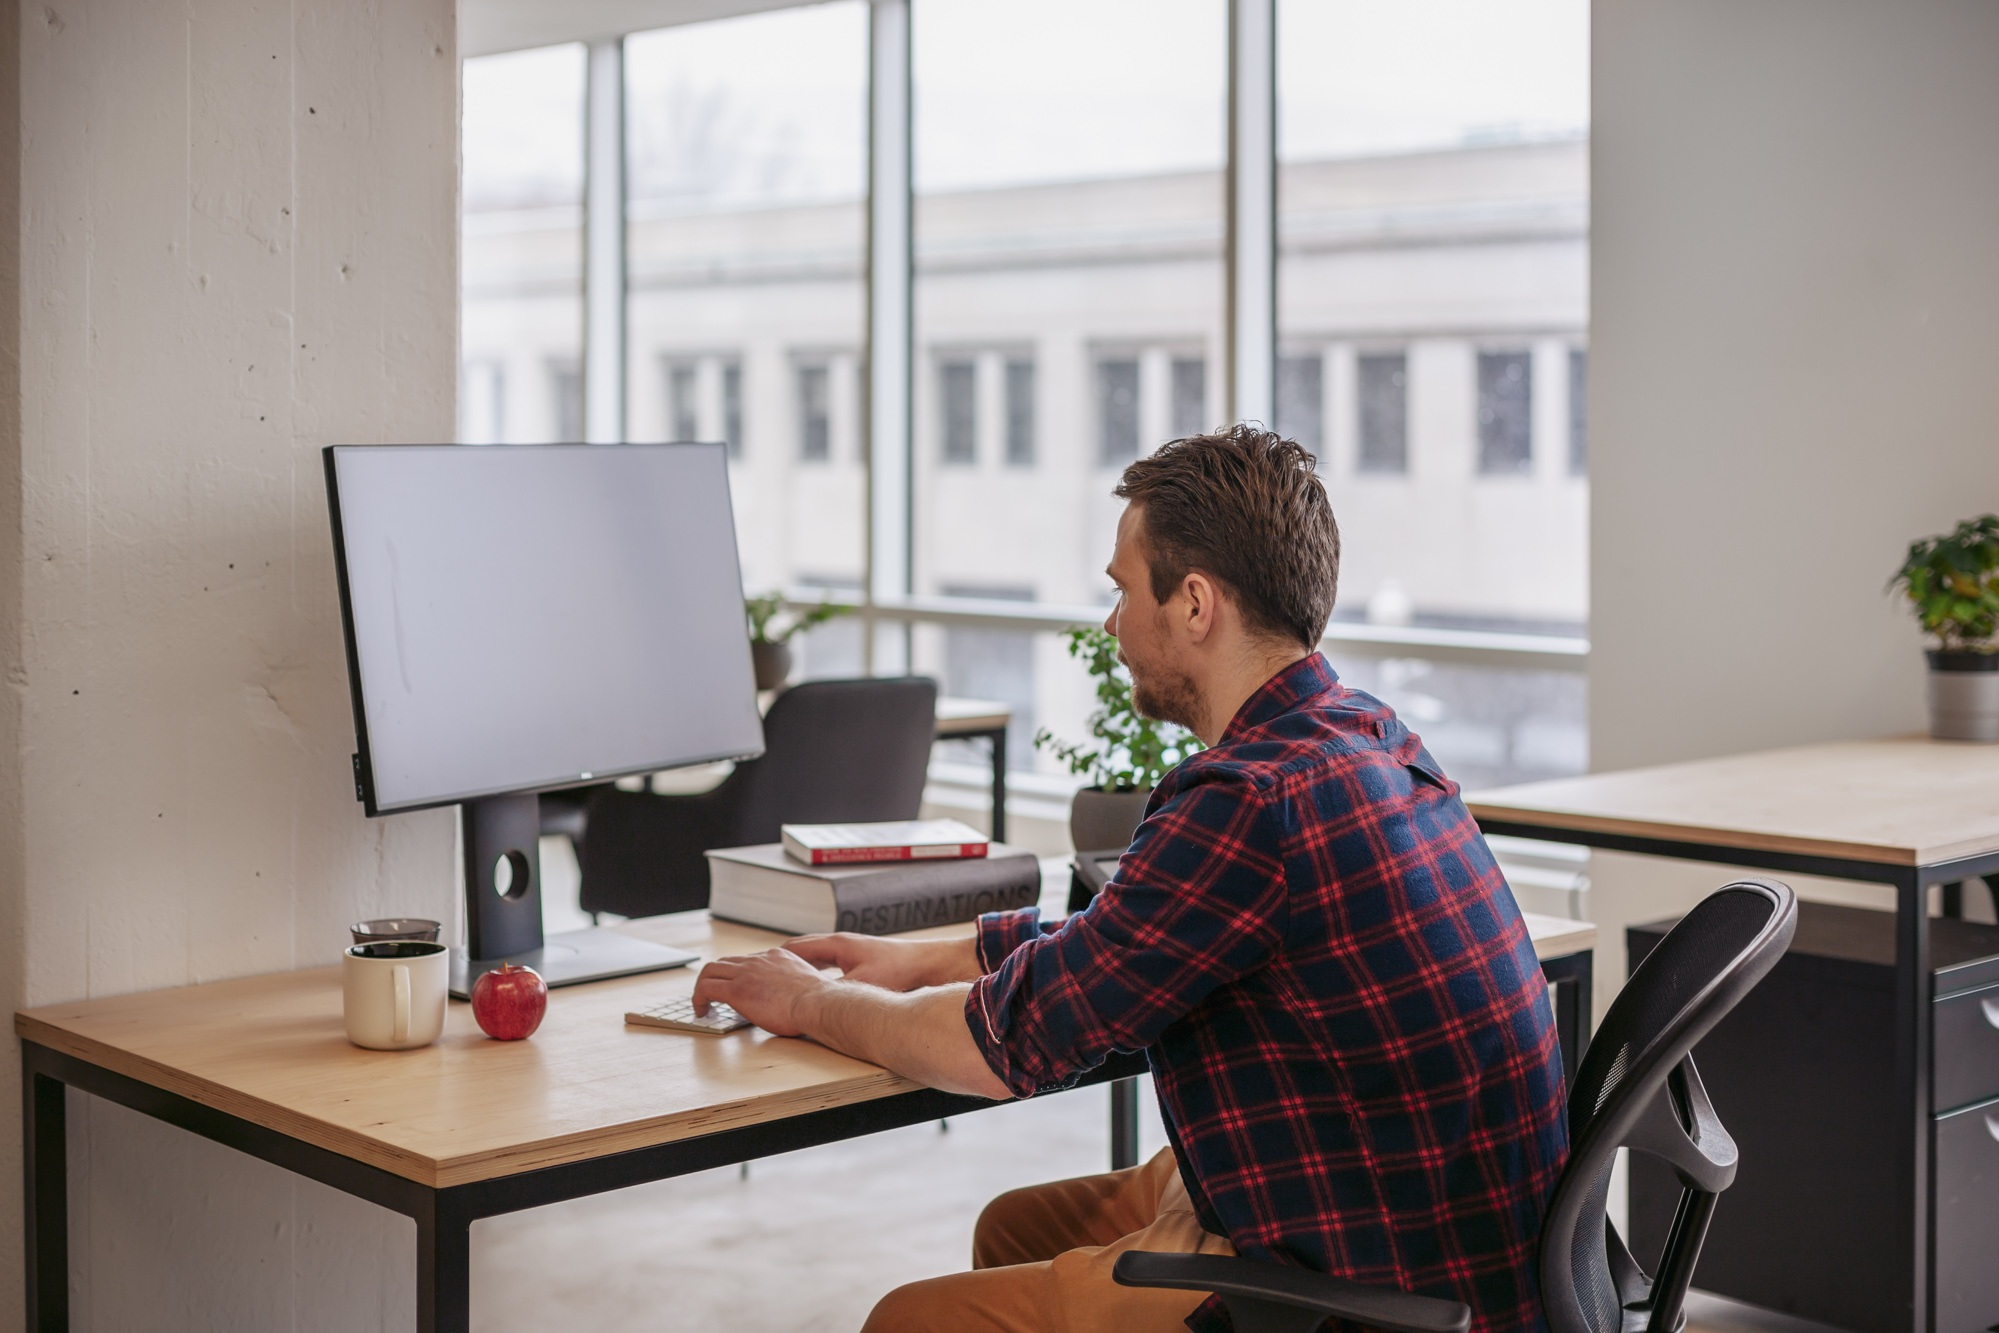 Assigned Desk - From $14/dayEnjoy and personalize your private space in a coworking environment, where you can leave your belongings. Learn more